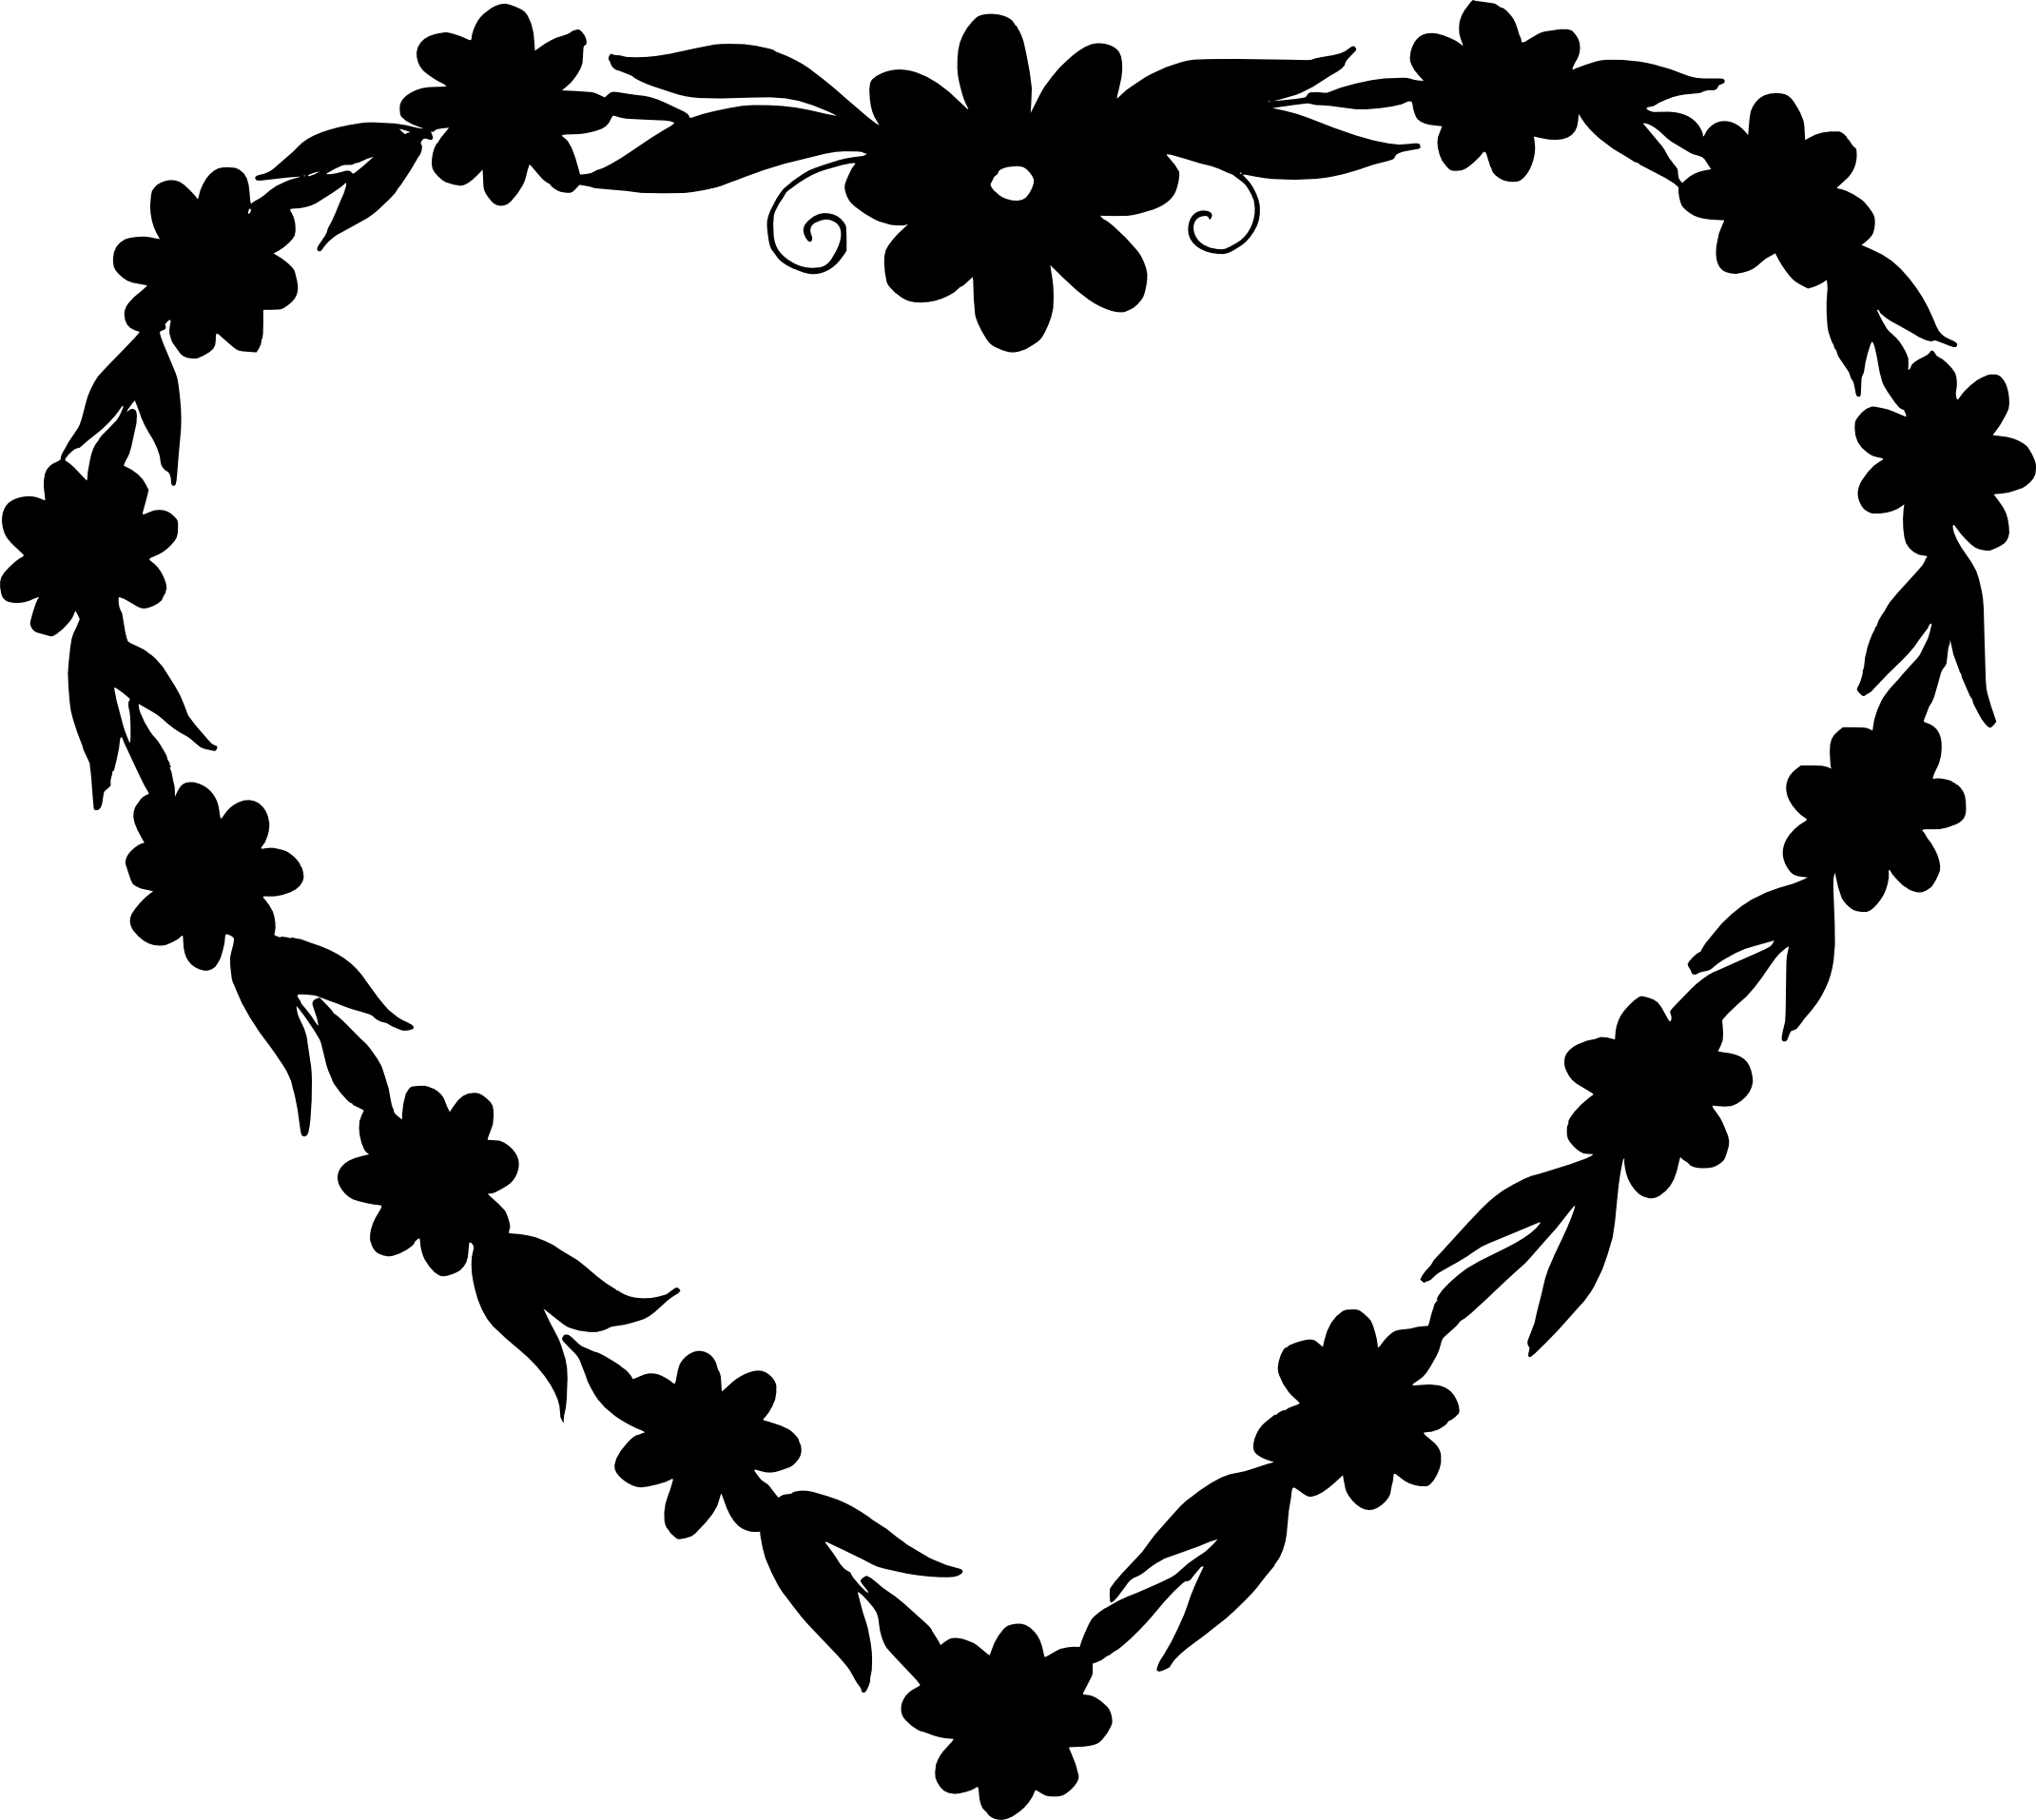 4e38c06dddf 10 Heart Frame Vector (PNG Transparent